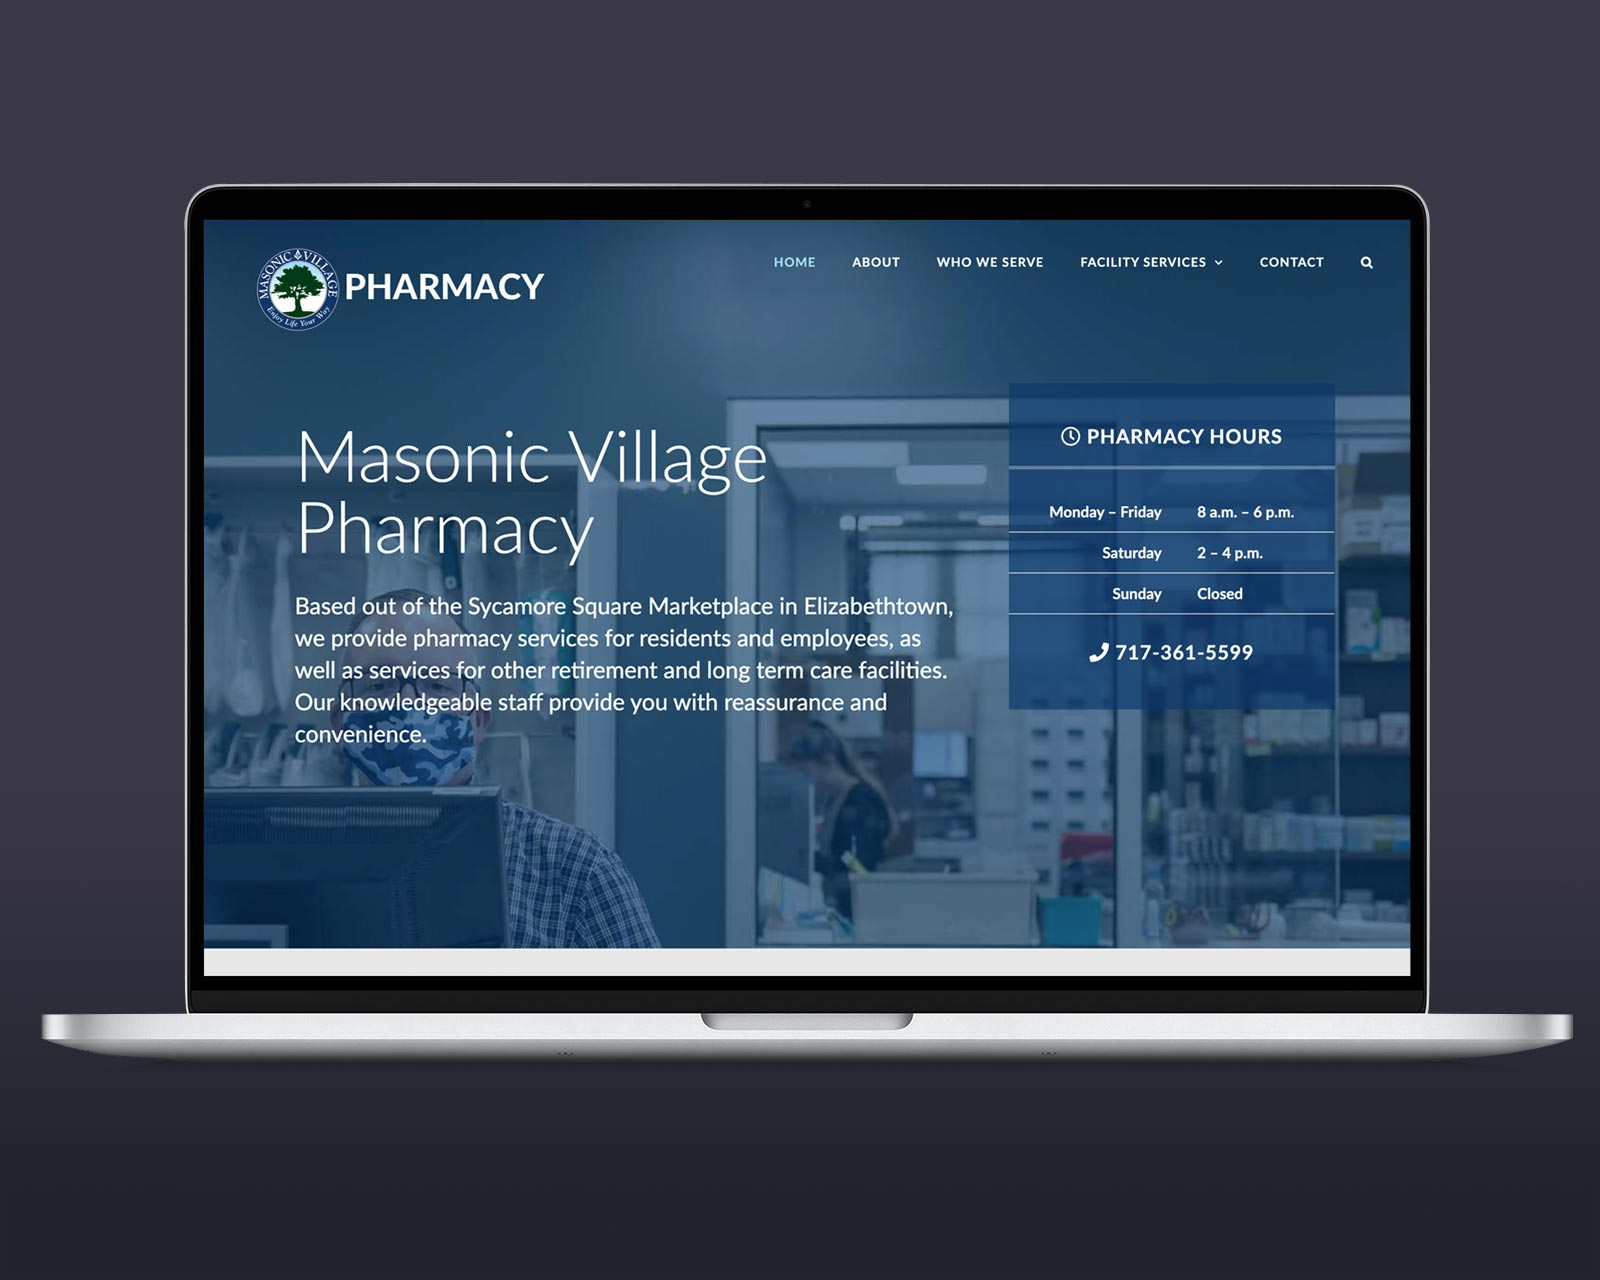 Masonic Village Pharmacy